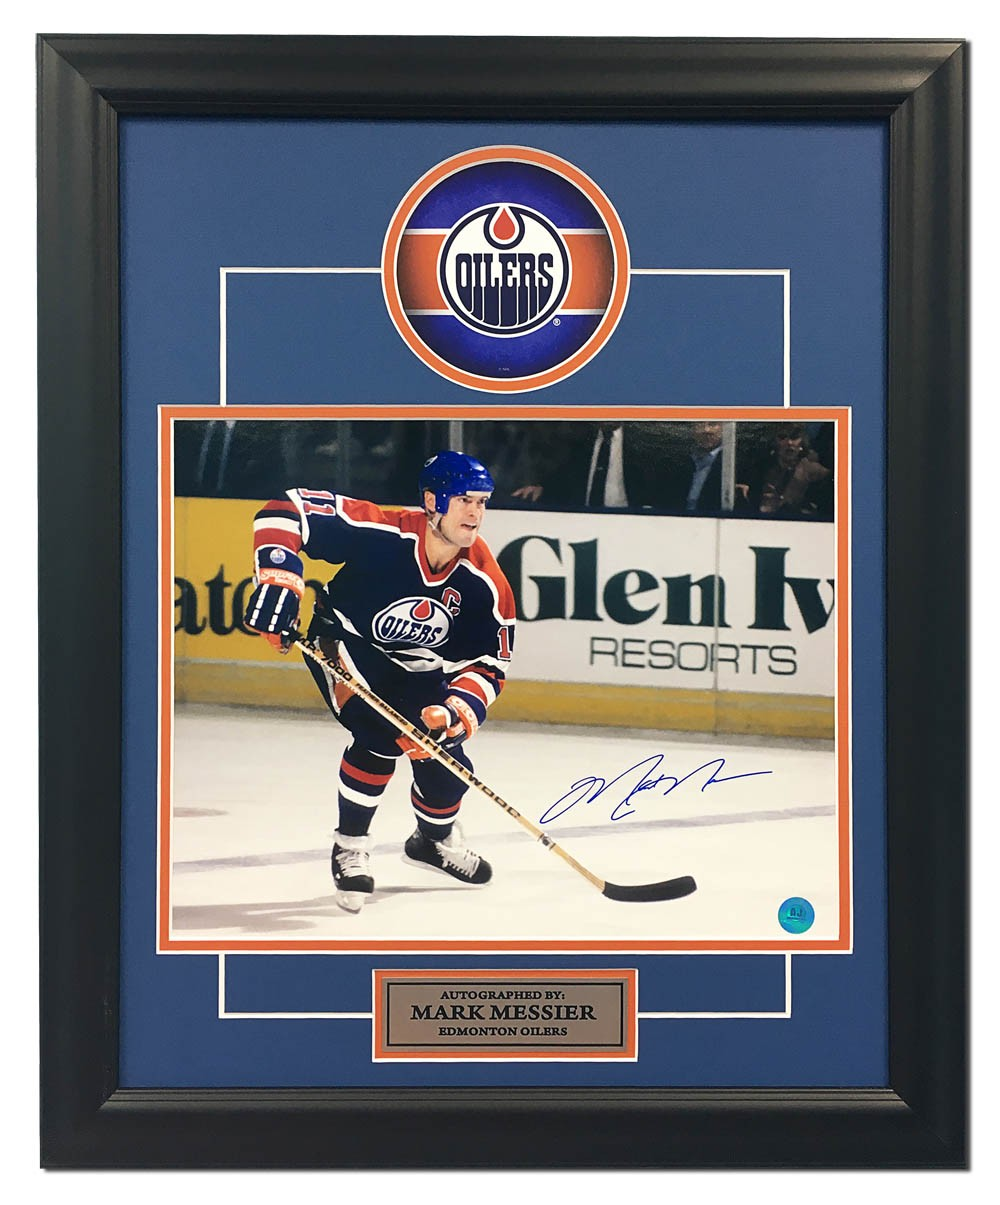 Mark Messier Edmonton Oilers Autographed Signed Hockey Rush 19x23 Frame -  Certified Authentic - Certified Authentic d89867d65